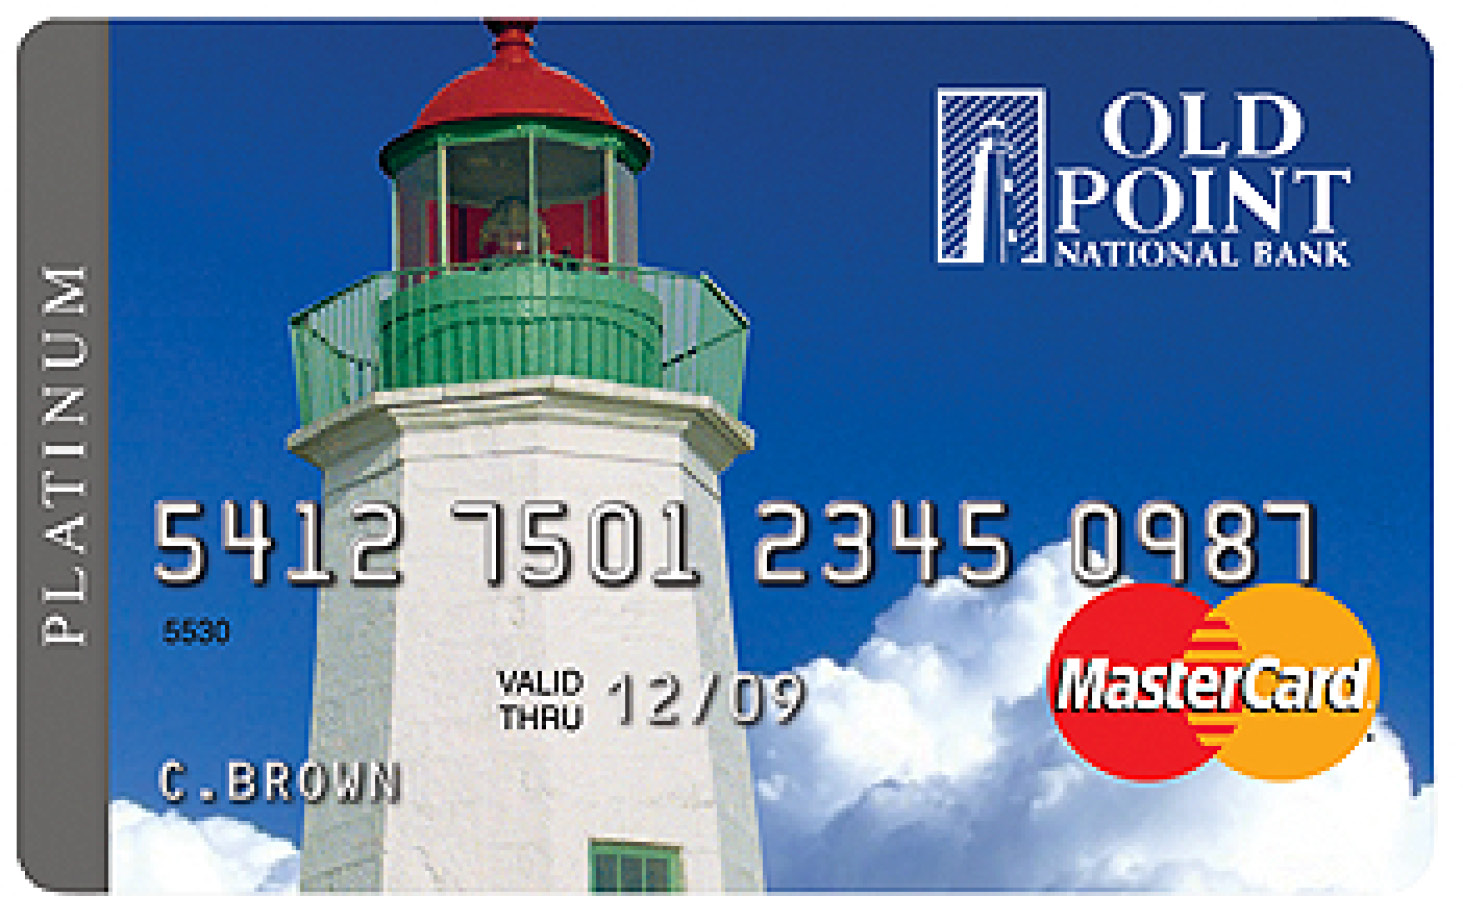 Lighthouse Old Point Credit Card with MasterCard logo